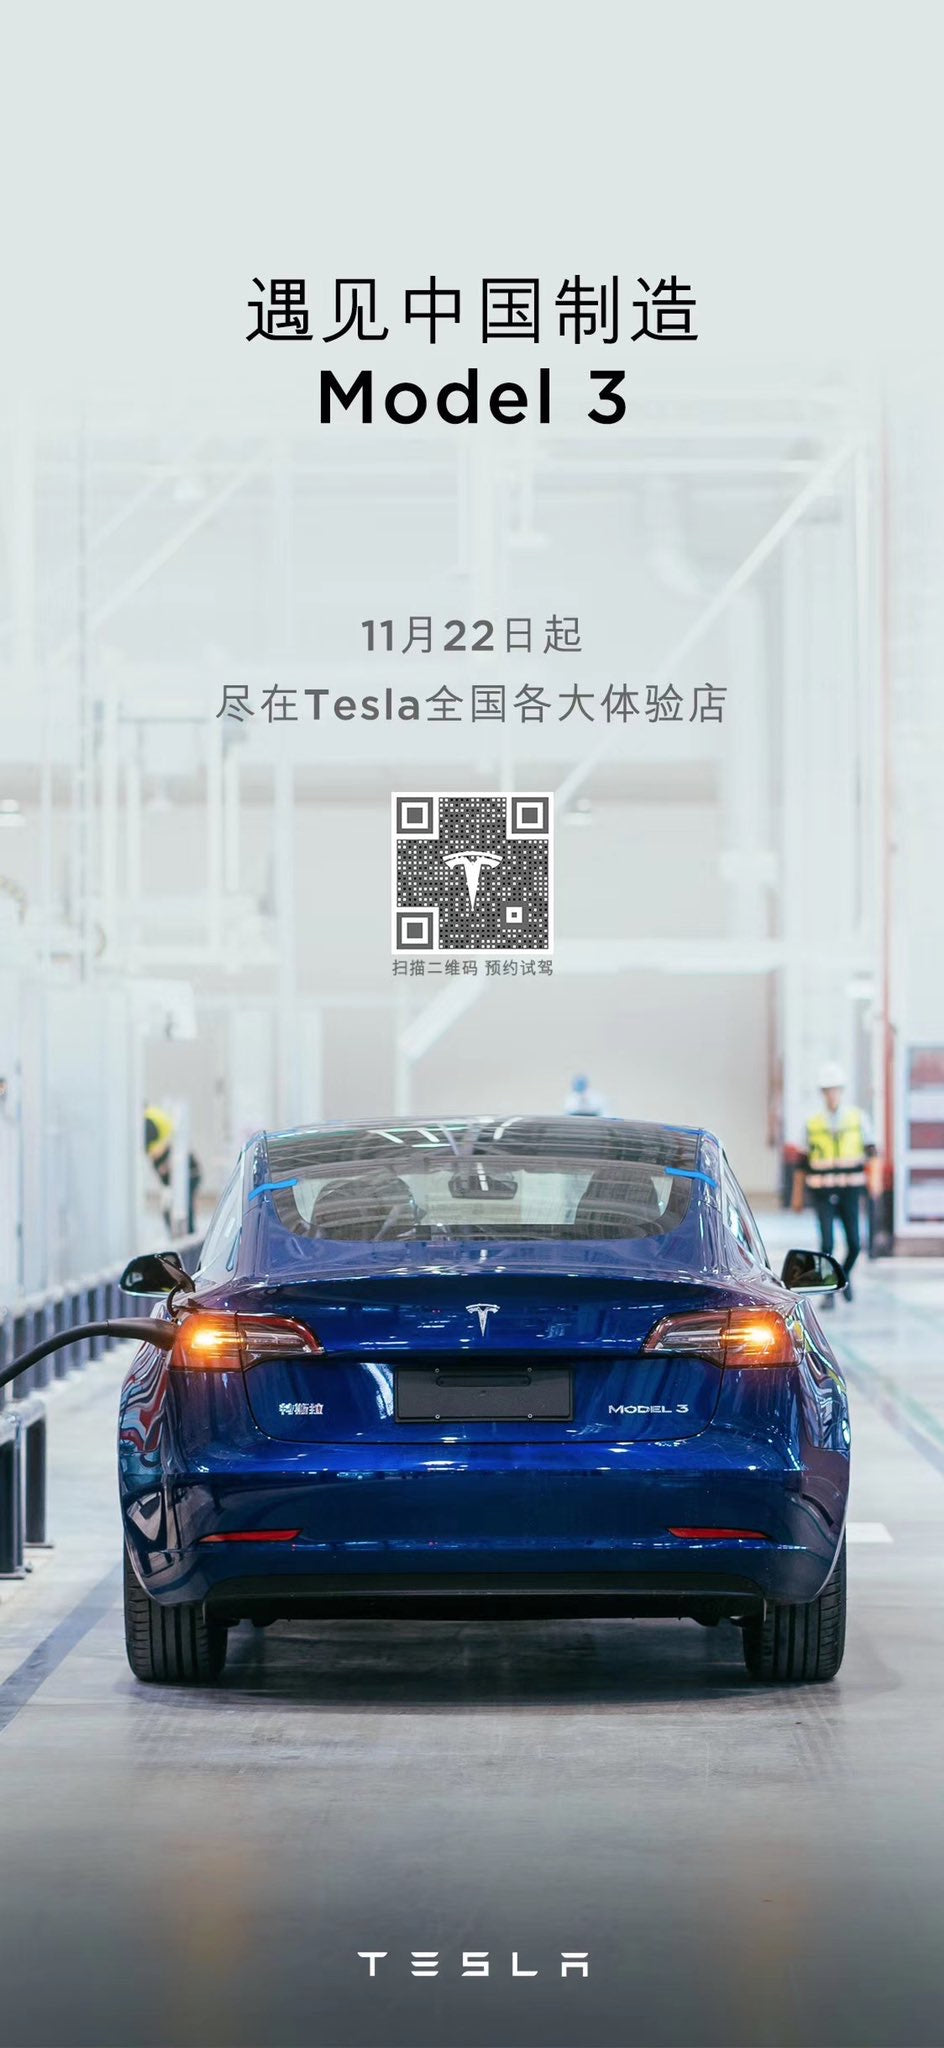 Made in China Tesla Model 3 will attend the Guangzhou International Automobile Exhibition which will start on Nov 22